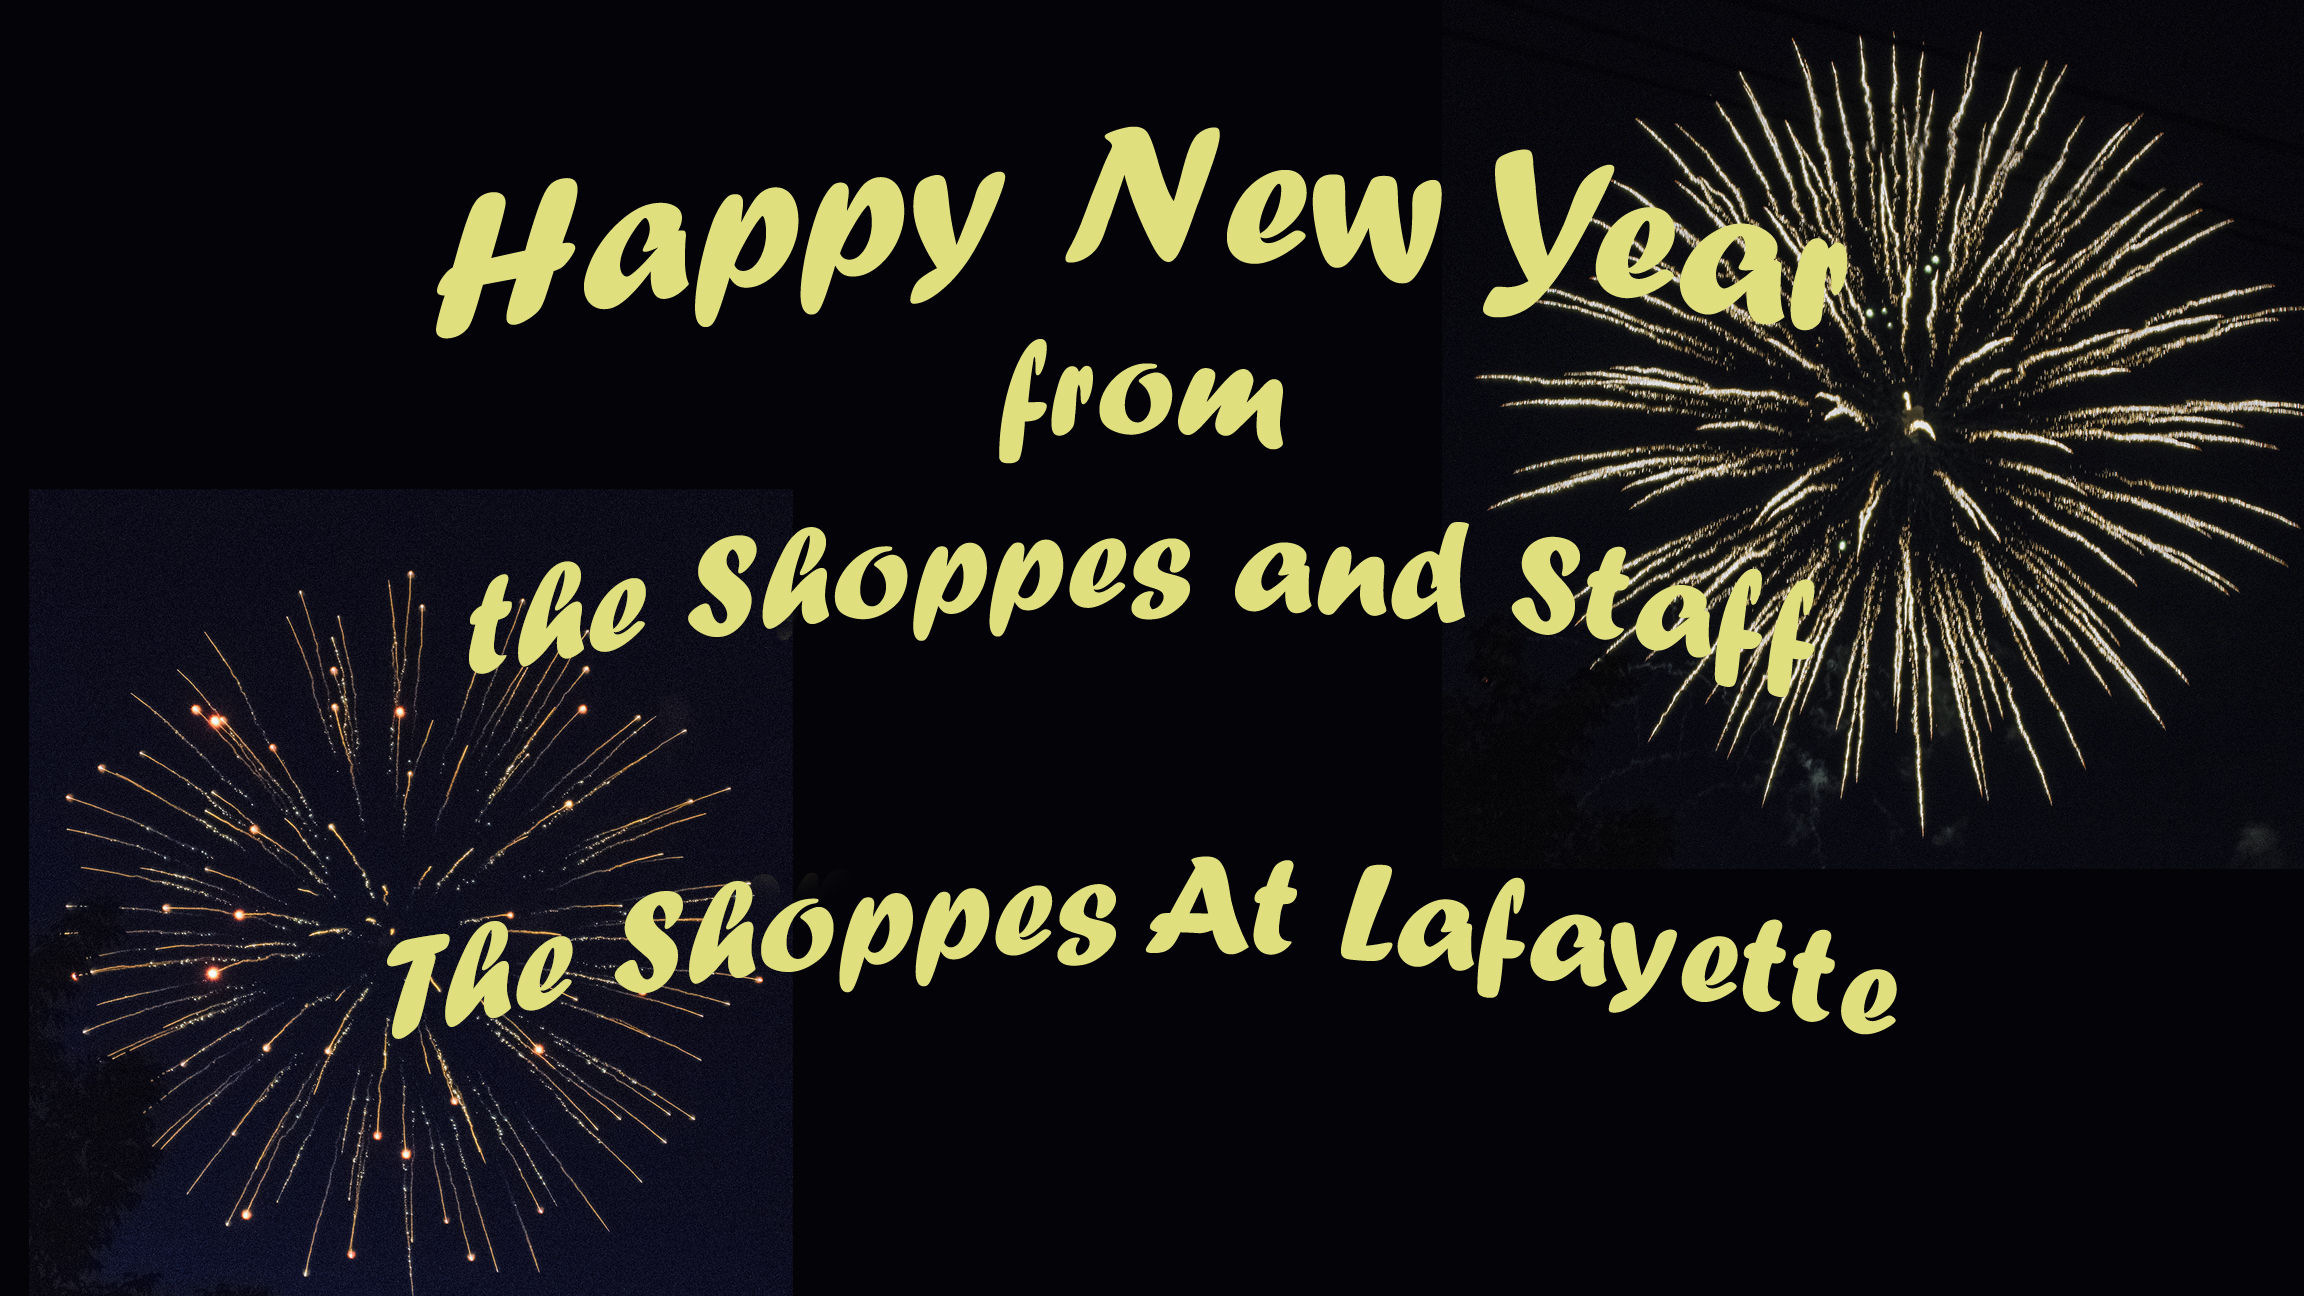 Happy New Year from The Shoppes At Lafayette